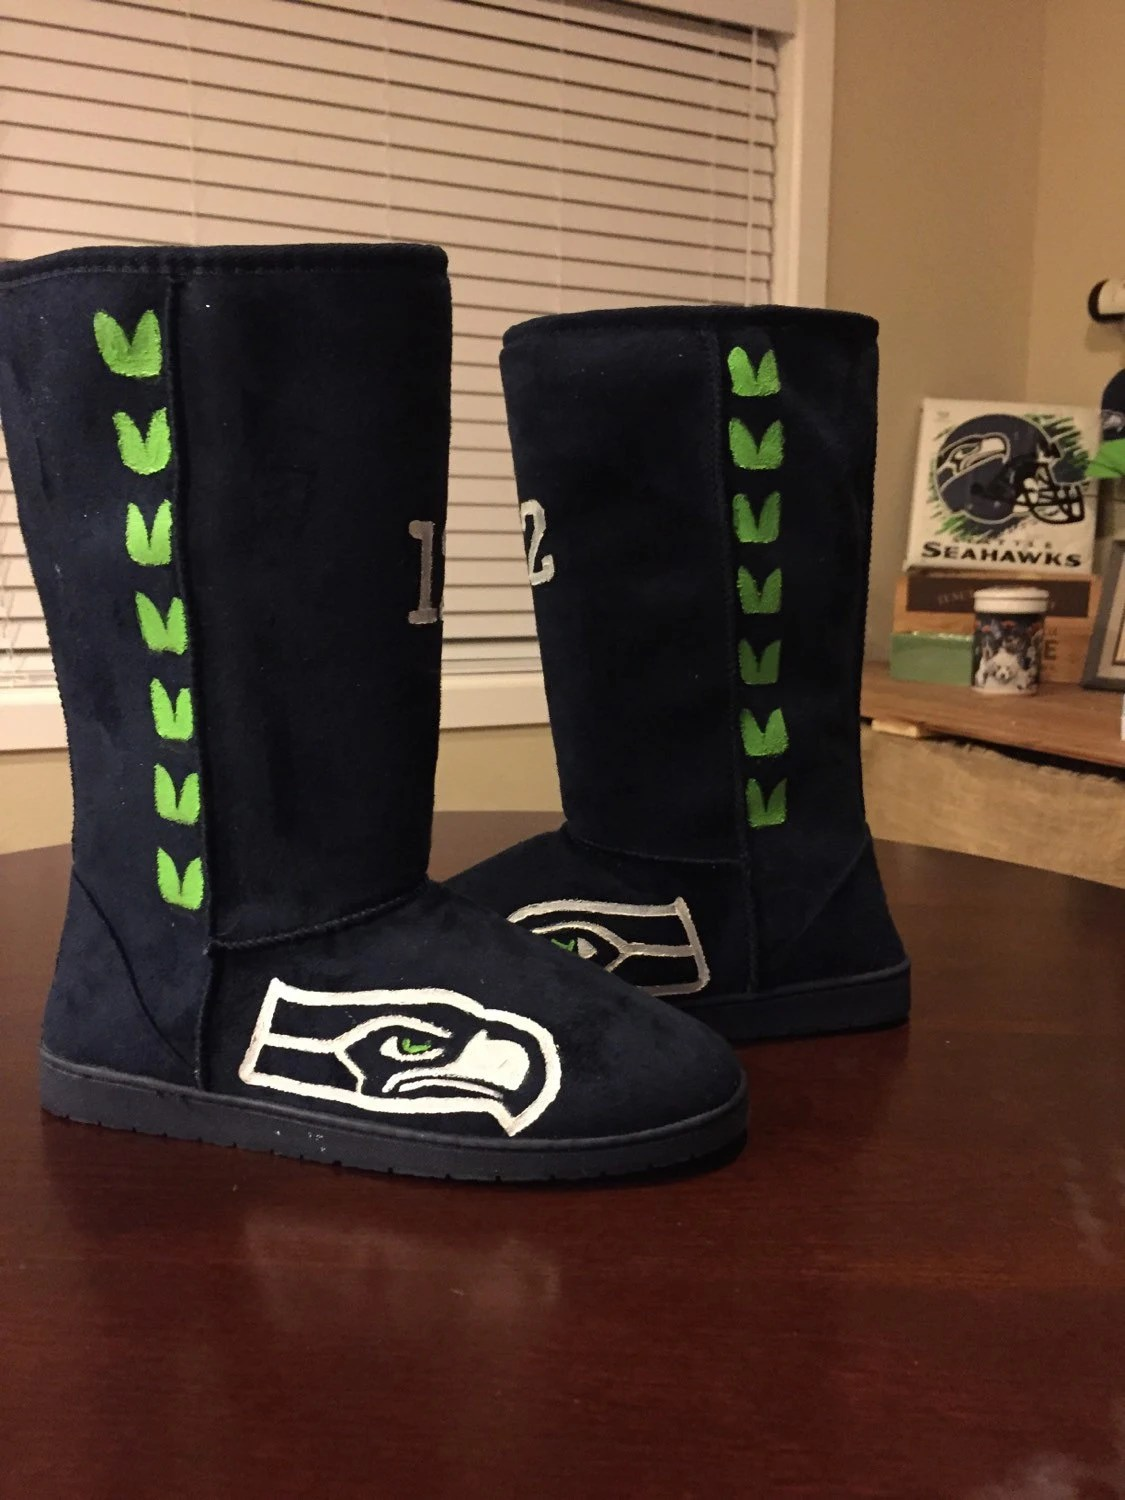 Seahawks Boots By Brookescustomshoes On Etsy